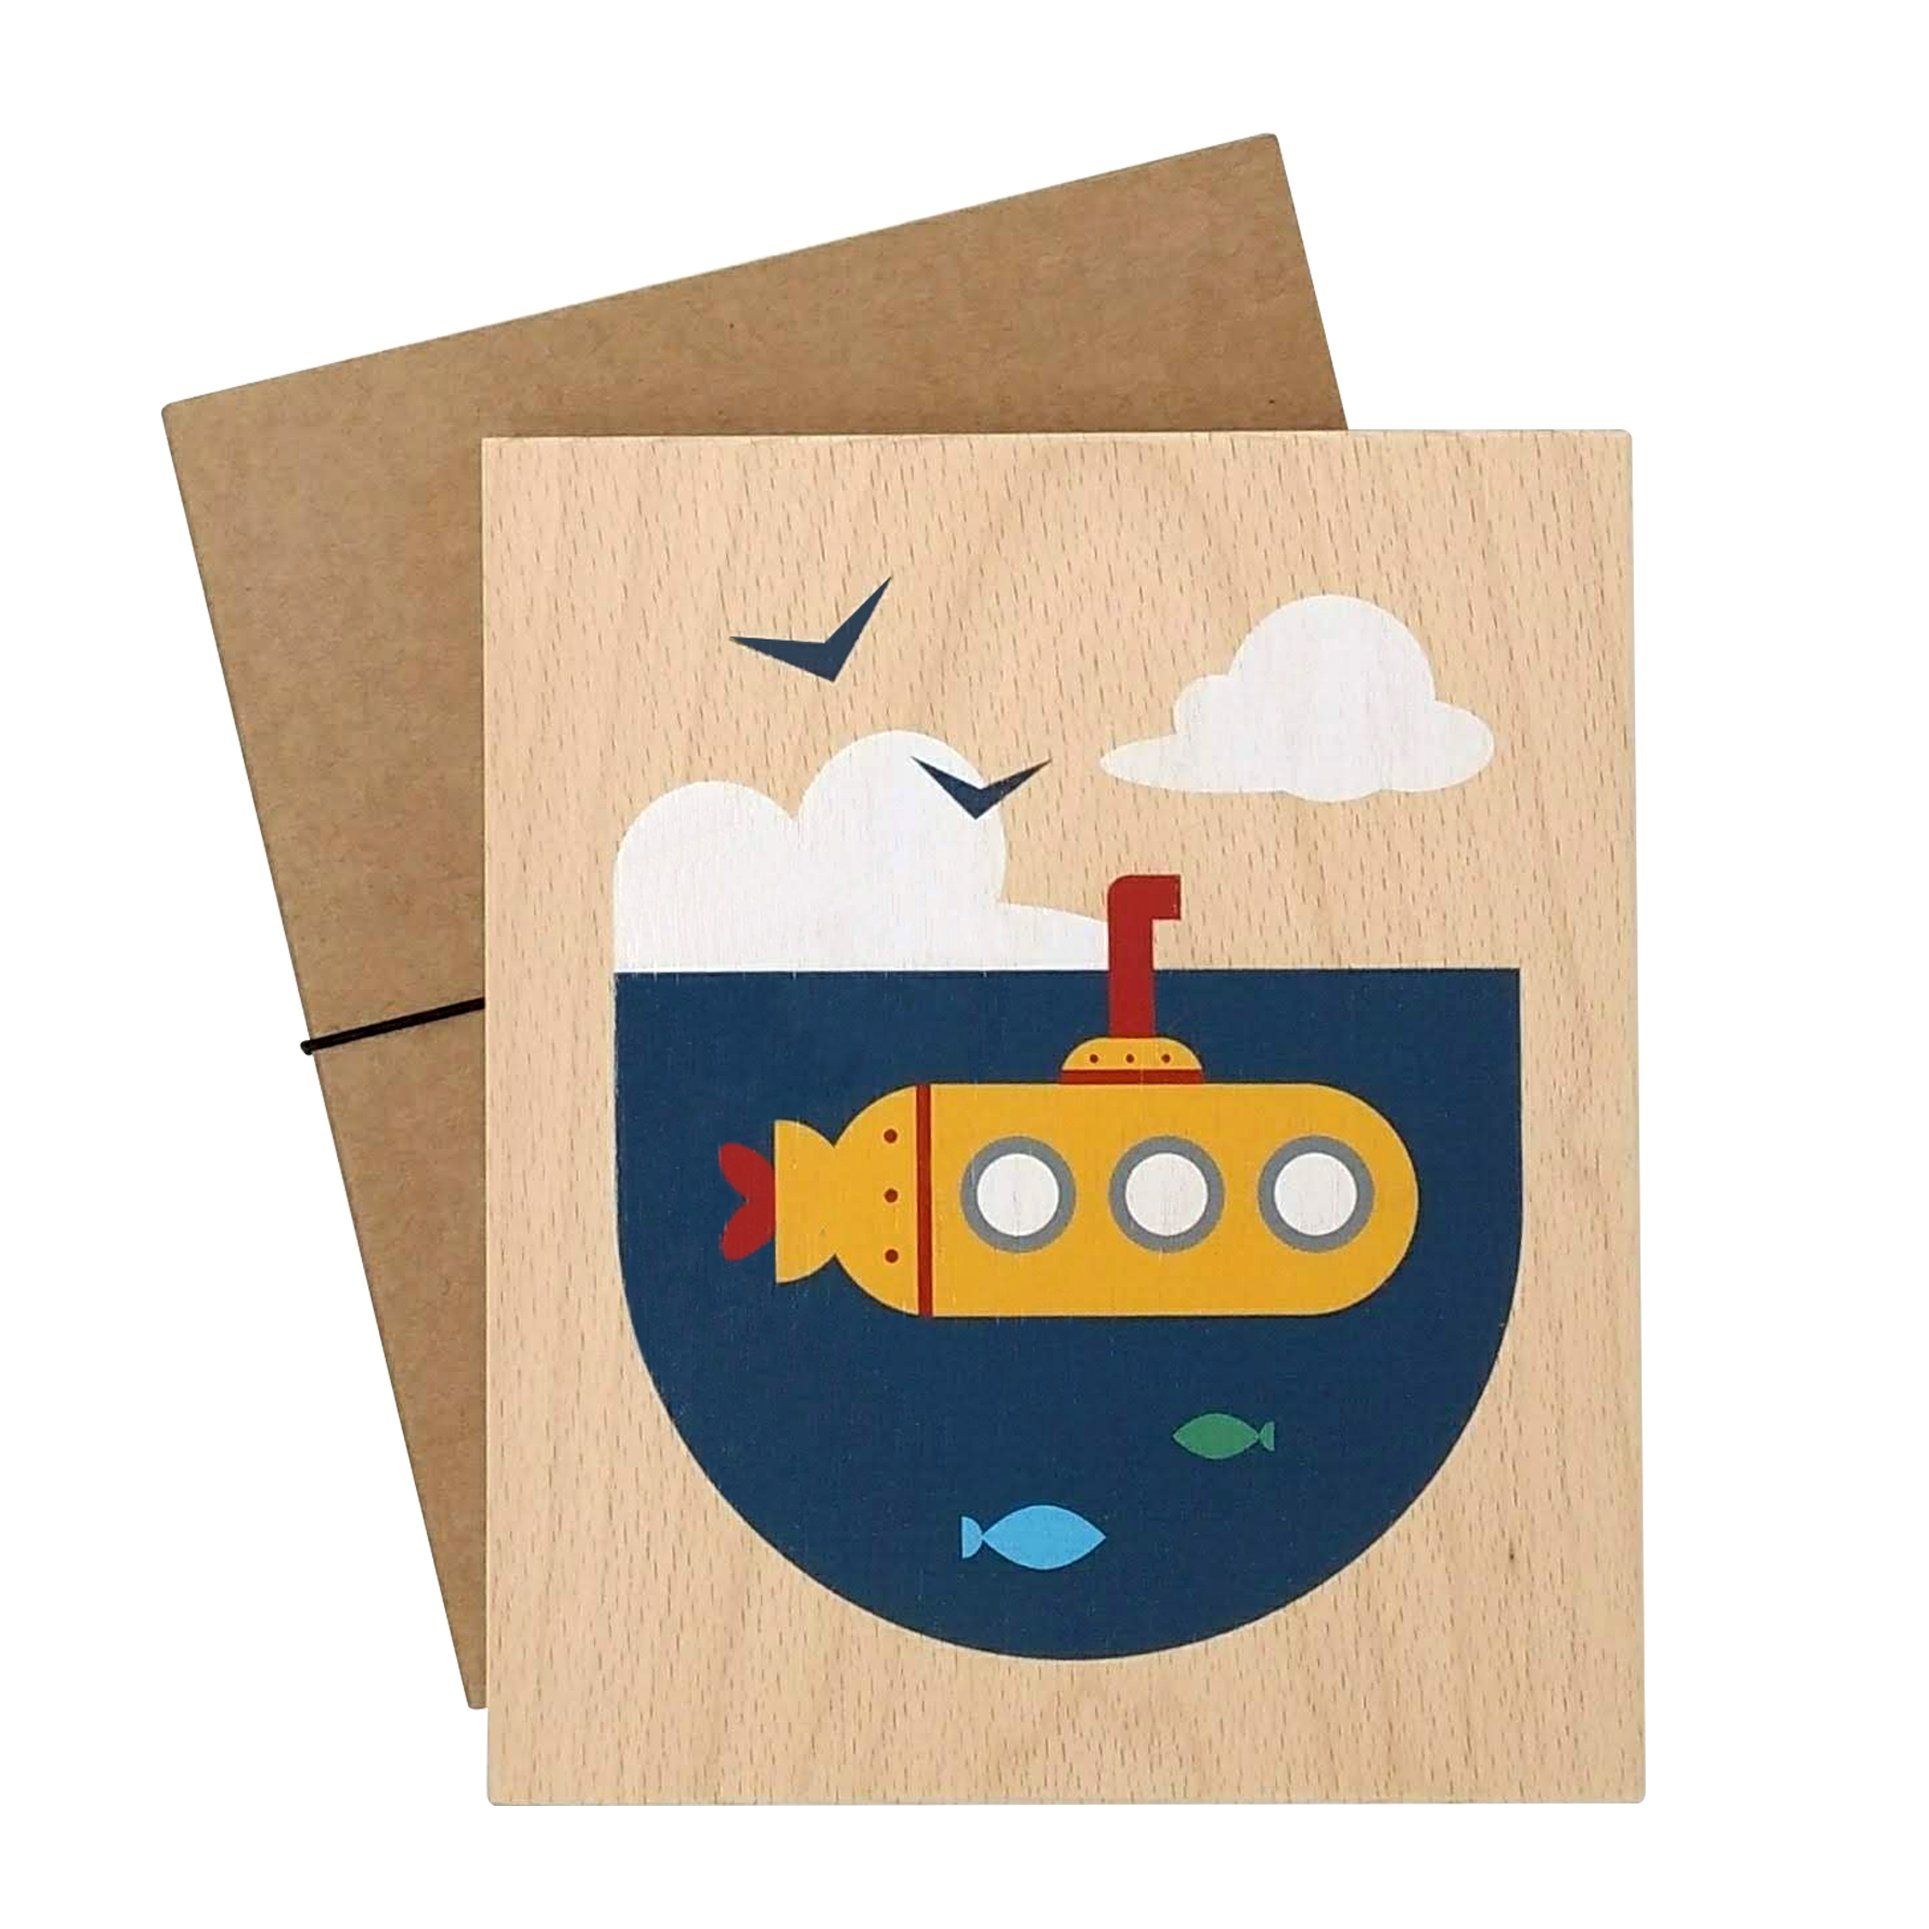 Lubulona submarine print with packaging